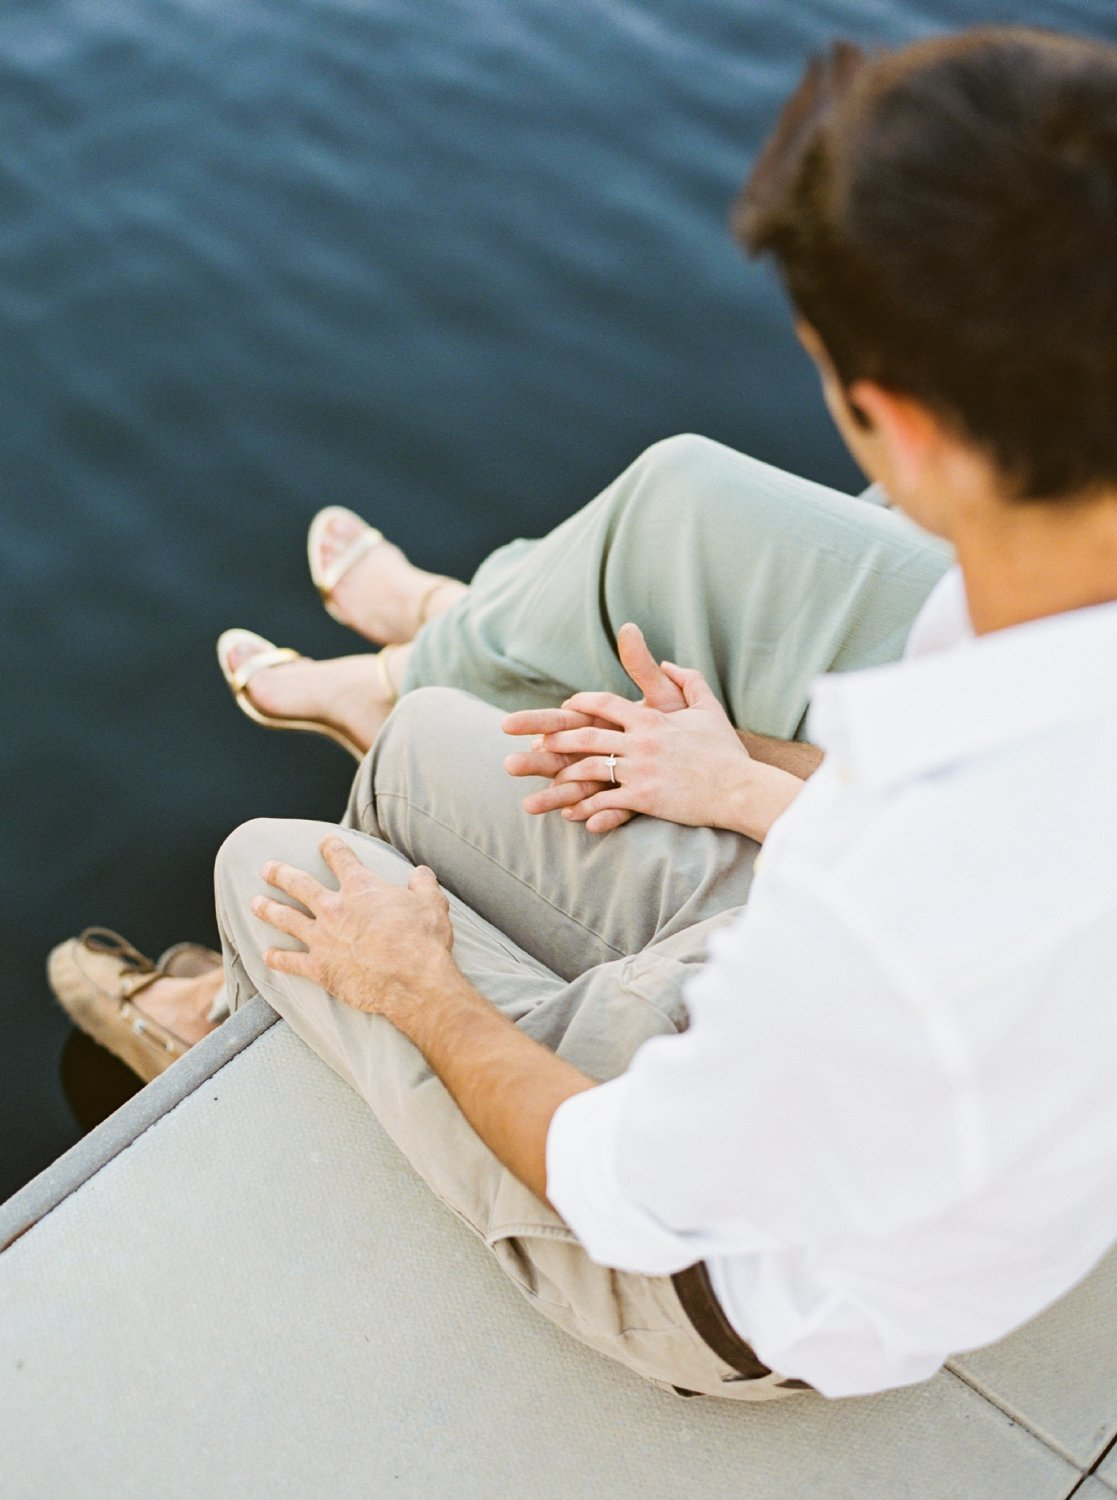 lake-arizona-engagement-session-wedding-photographer-Rachael-Koscica_0573